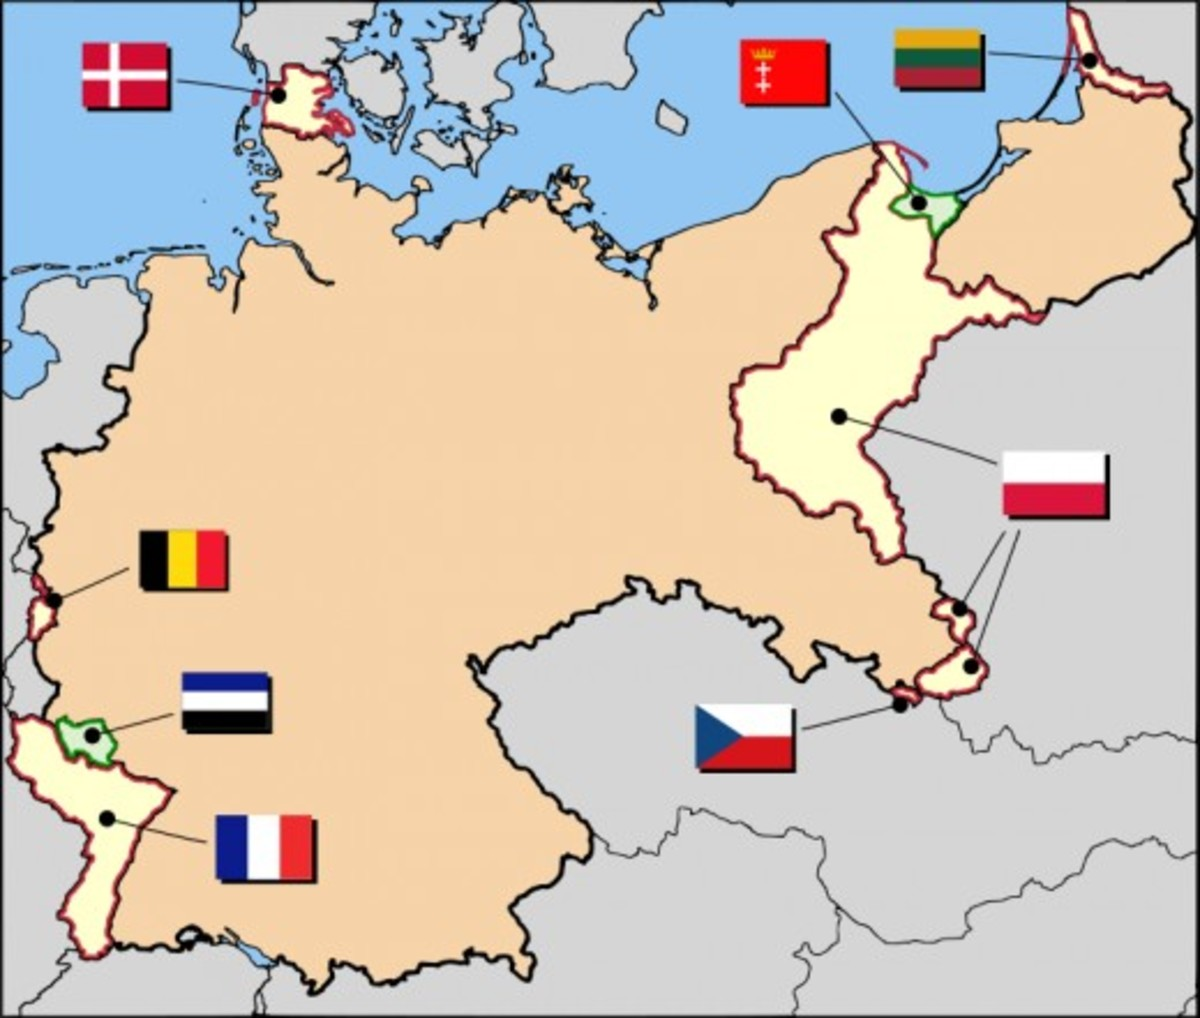 German territorial losses were extensive, but most were not unjust.